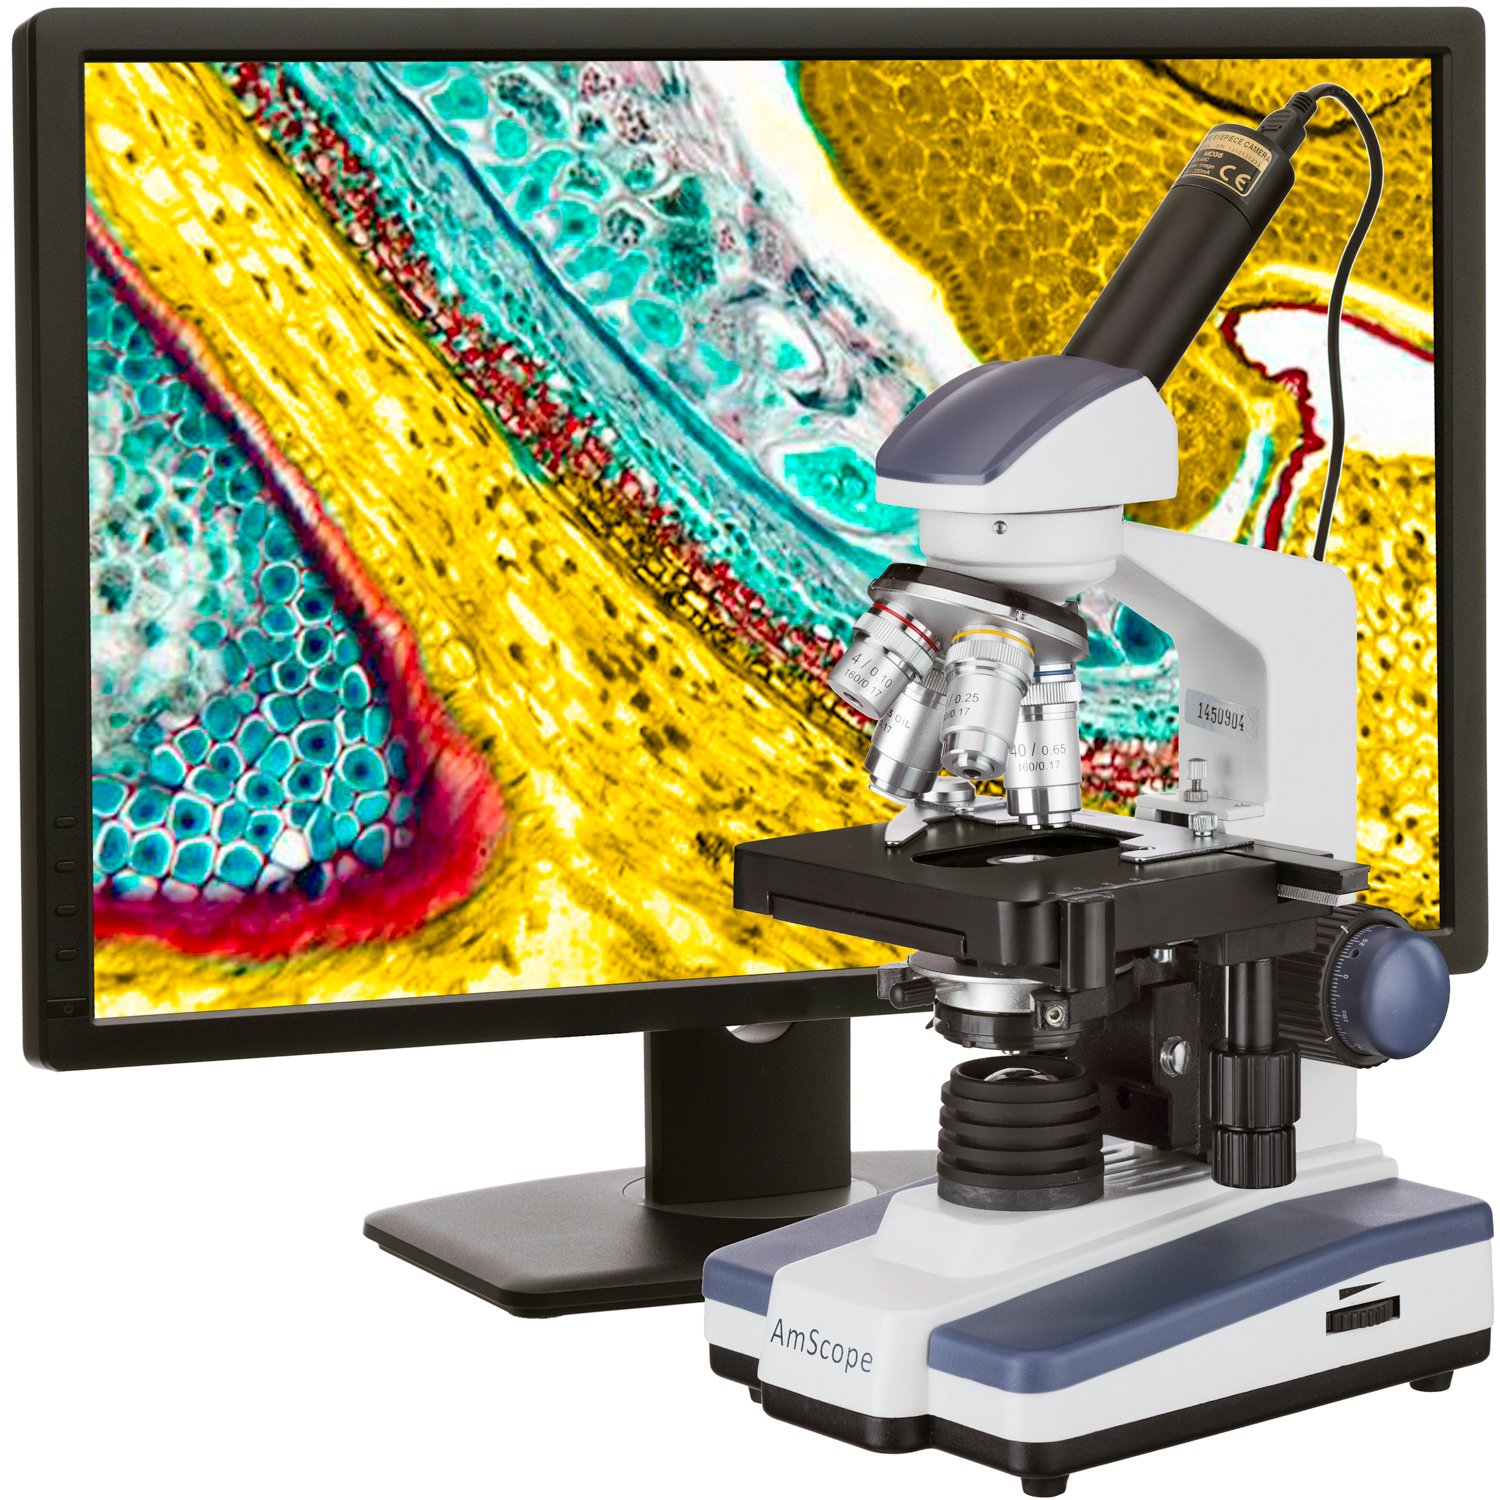 AmScope M620C-E1 Digital Compound Monocular Microscope, WF10x and WF25x Eyepieces, 40x-2500x Magnification, Brightfield, LED Illumination, Abbe Condenser, Mechanical Stage, 110V, Includes 1.3MP Camera and Software by AmScope